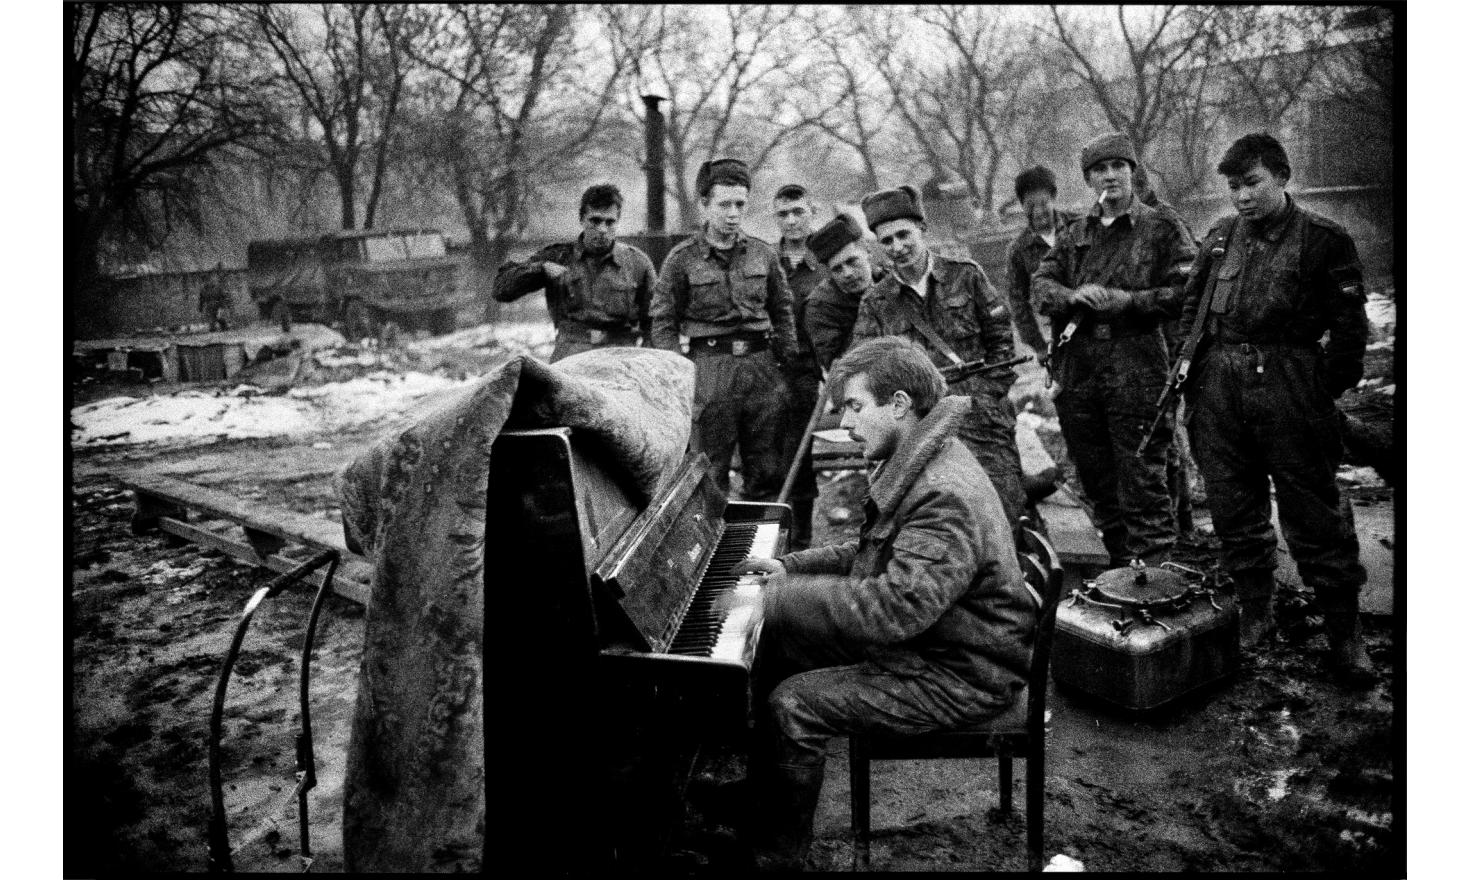 The pianist. Russian army headquarters. Grozny, Chechnya. January 1995